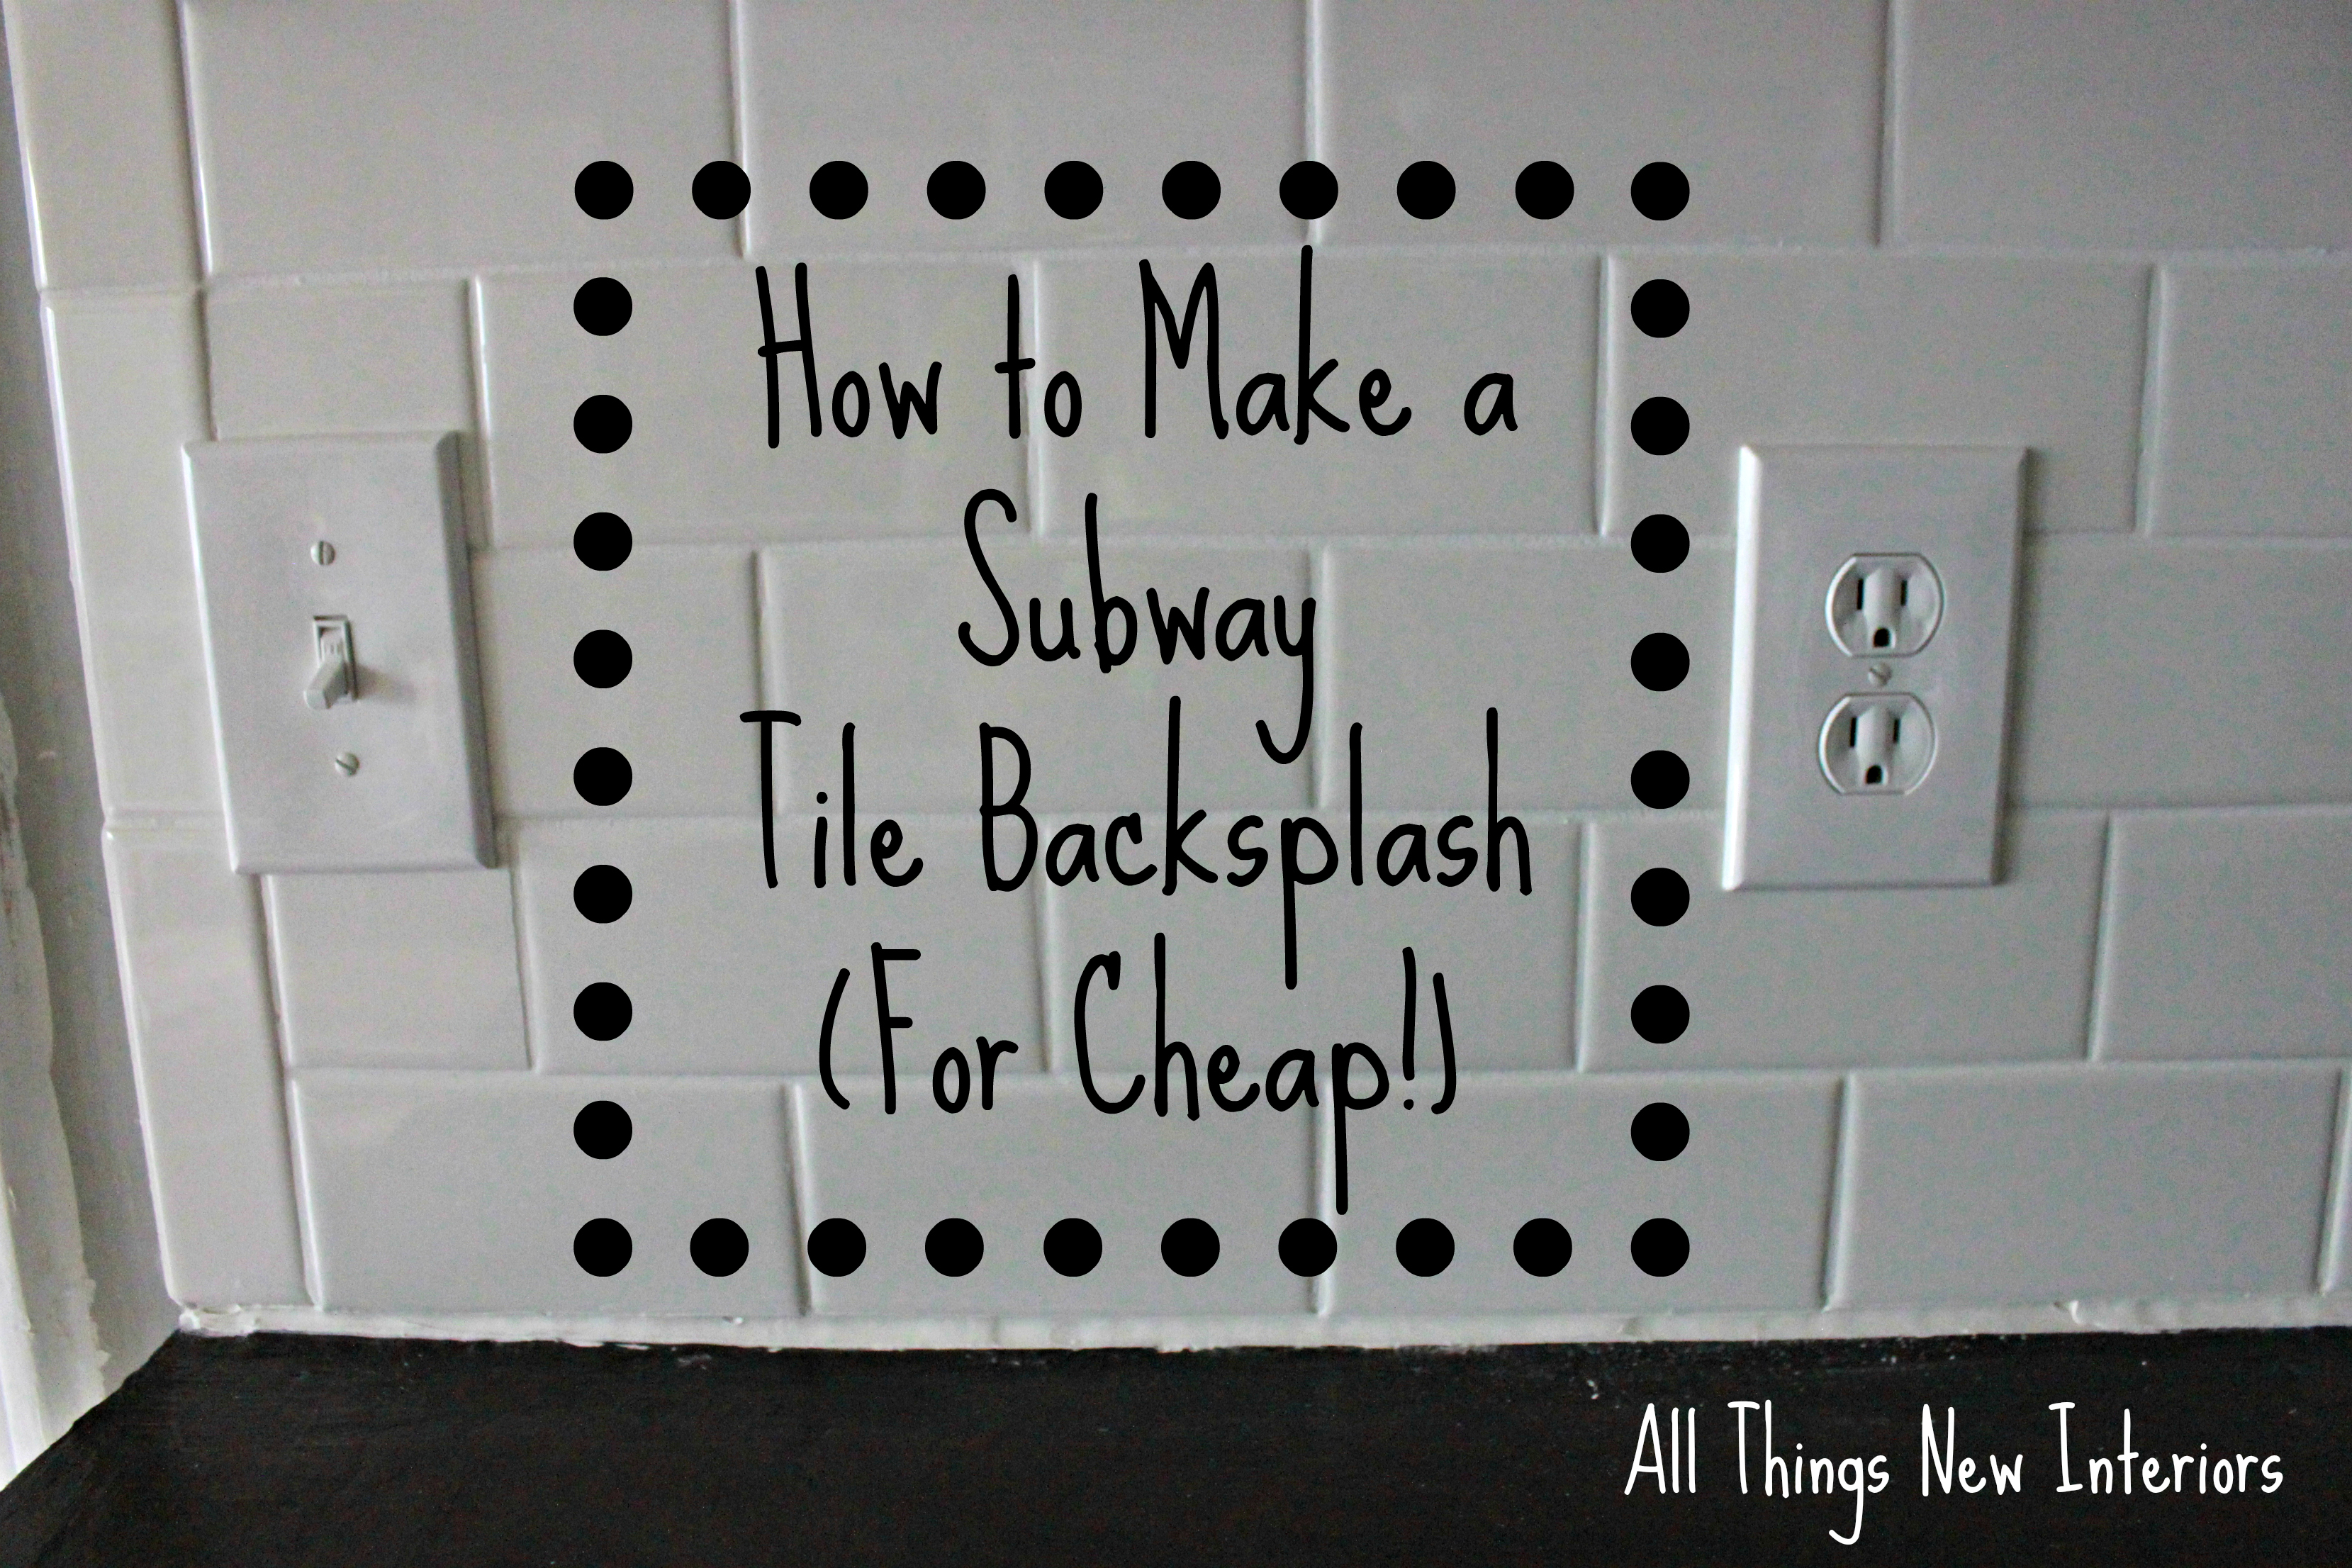 How to make a subway tile backsplash for cheap all things new img0663backsplash dailygadgetfo Gallery